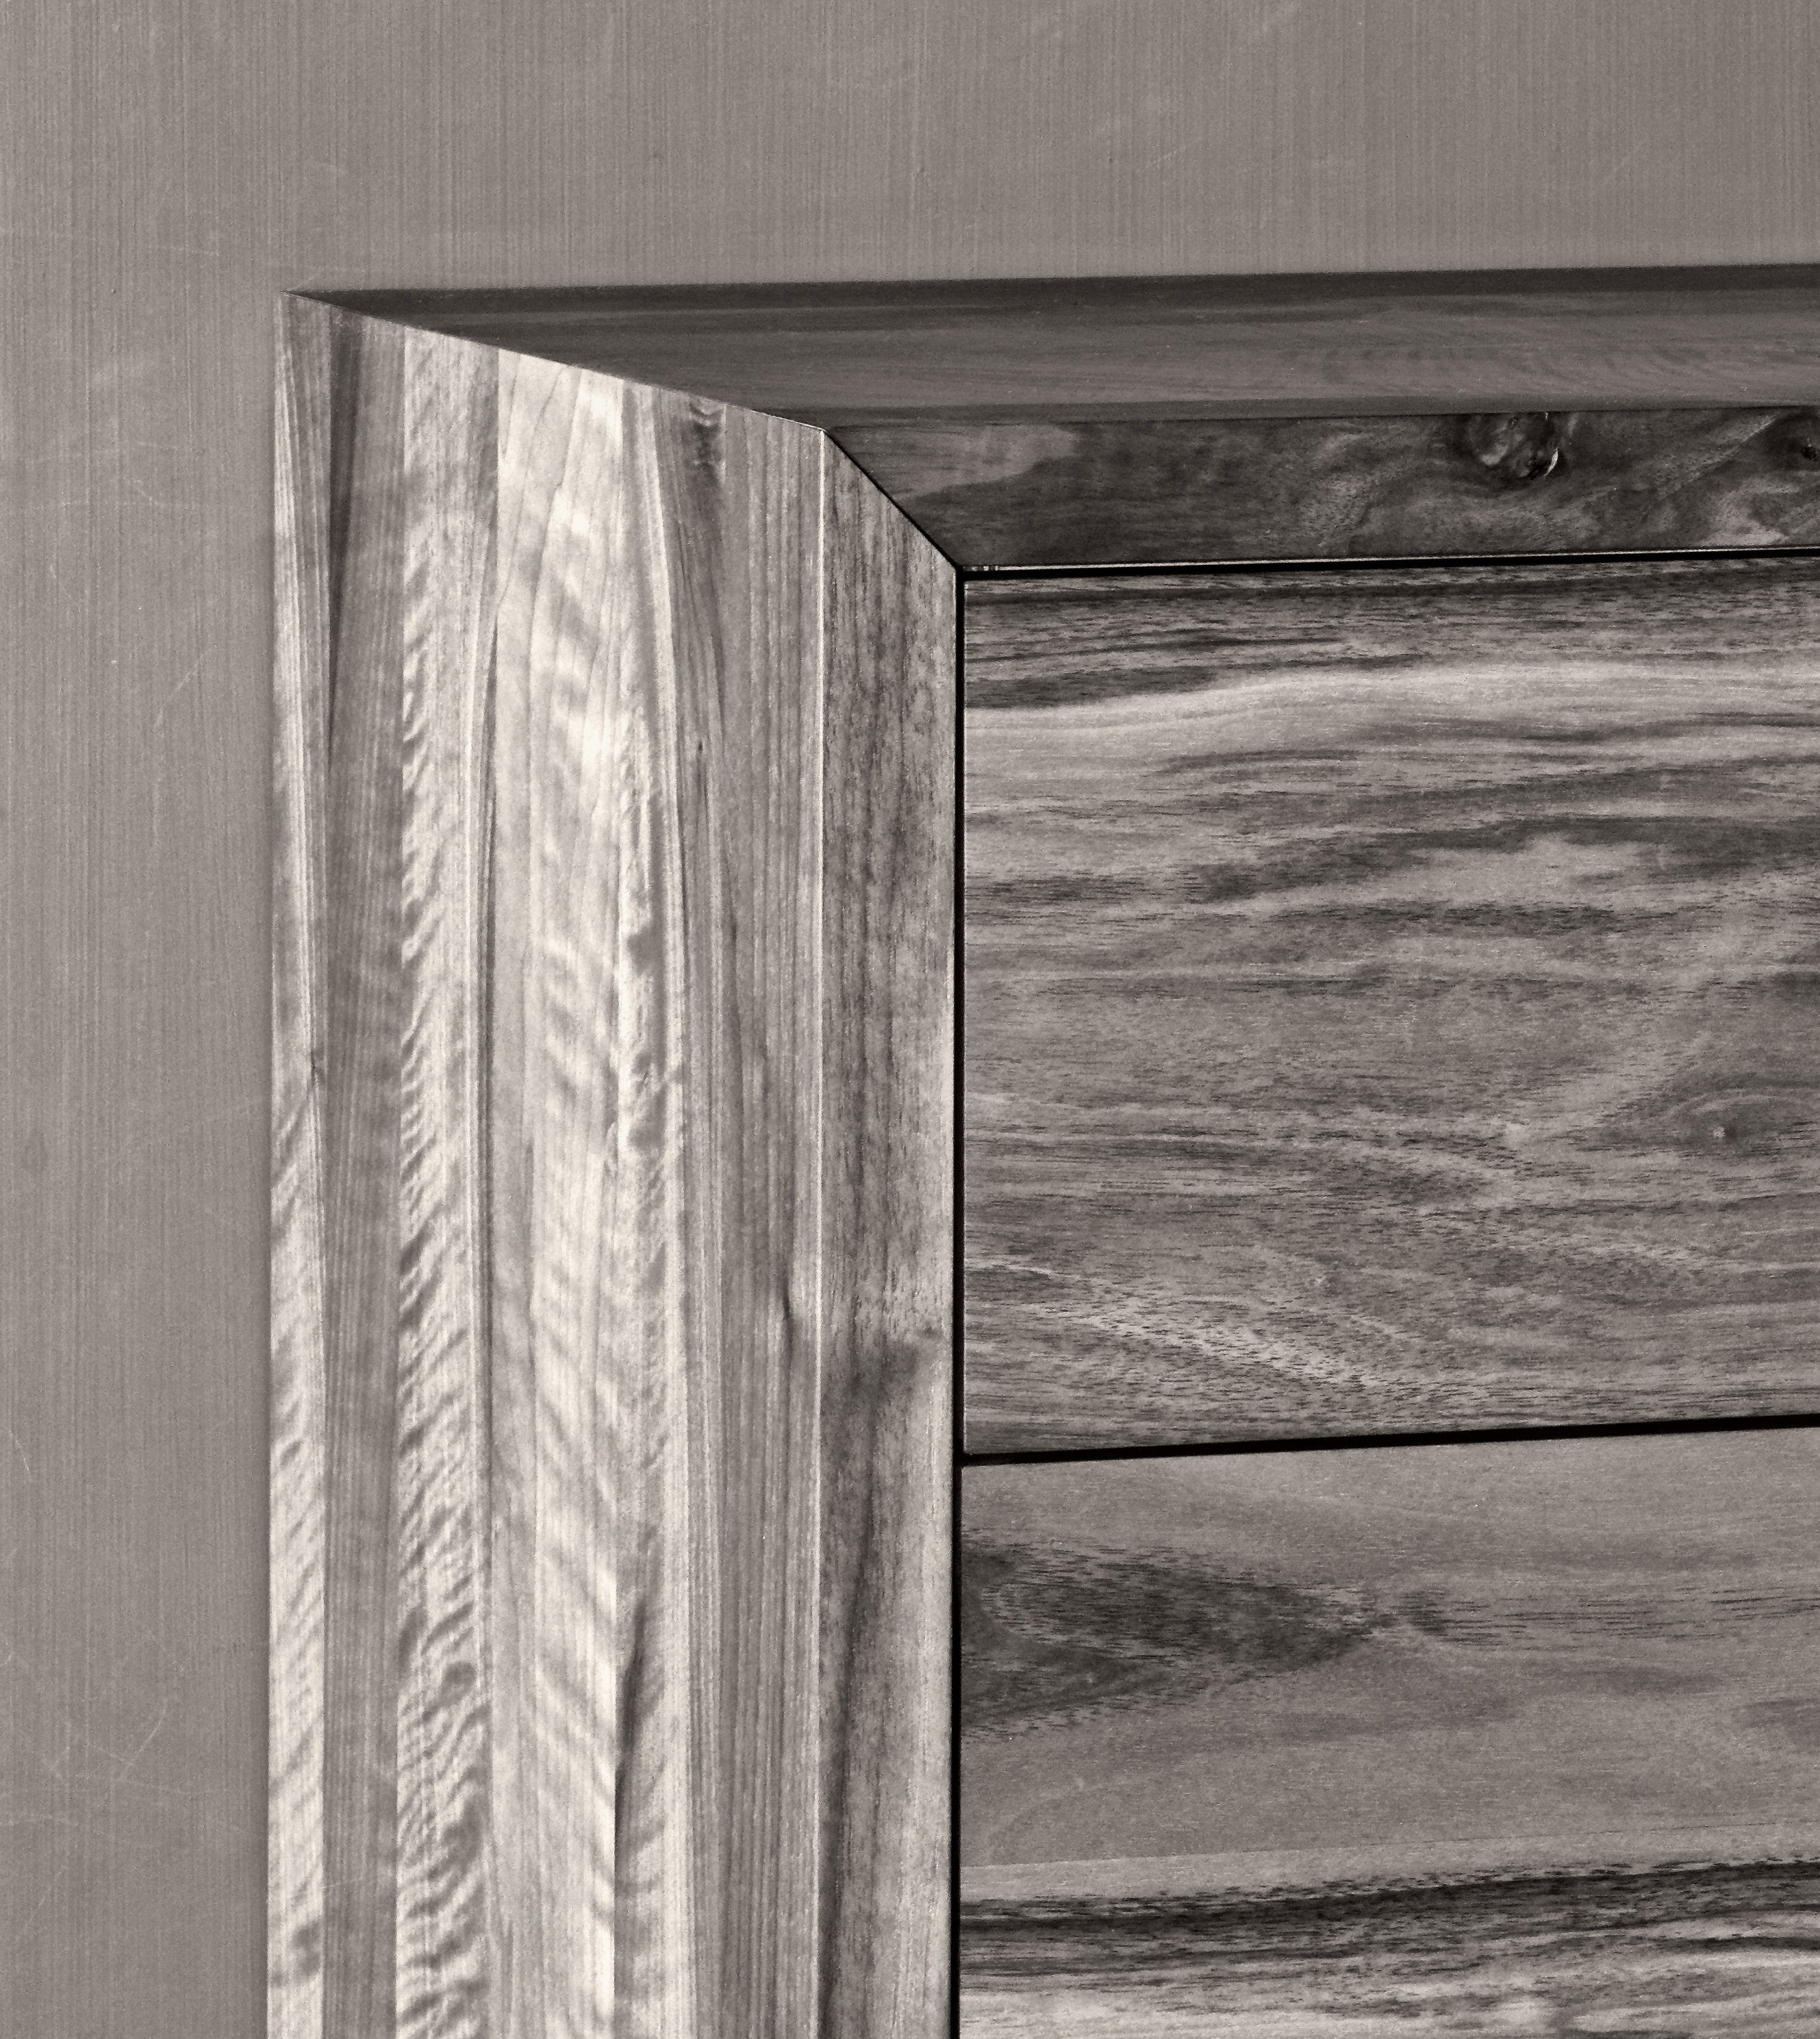 sideboard by Oeschger cabinetry